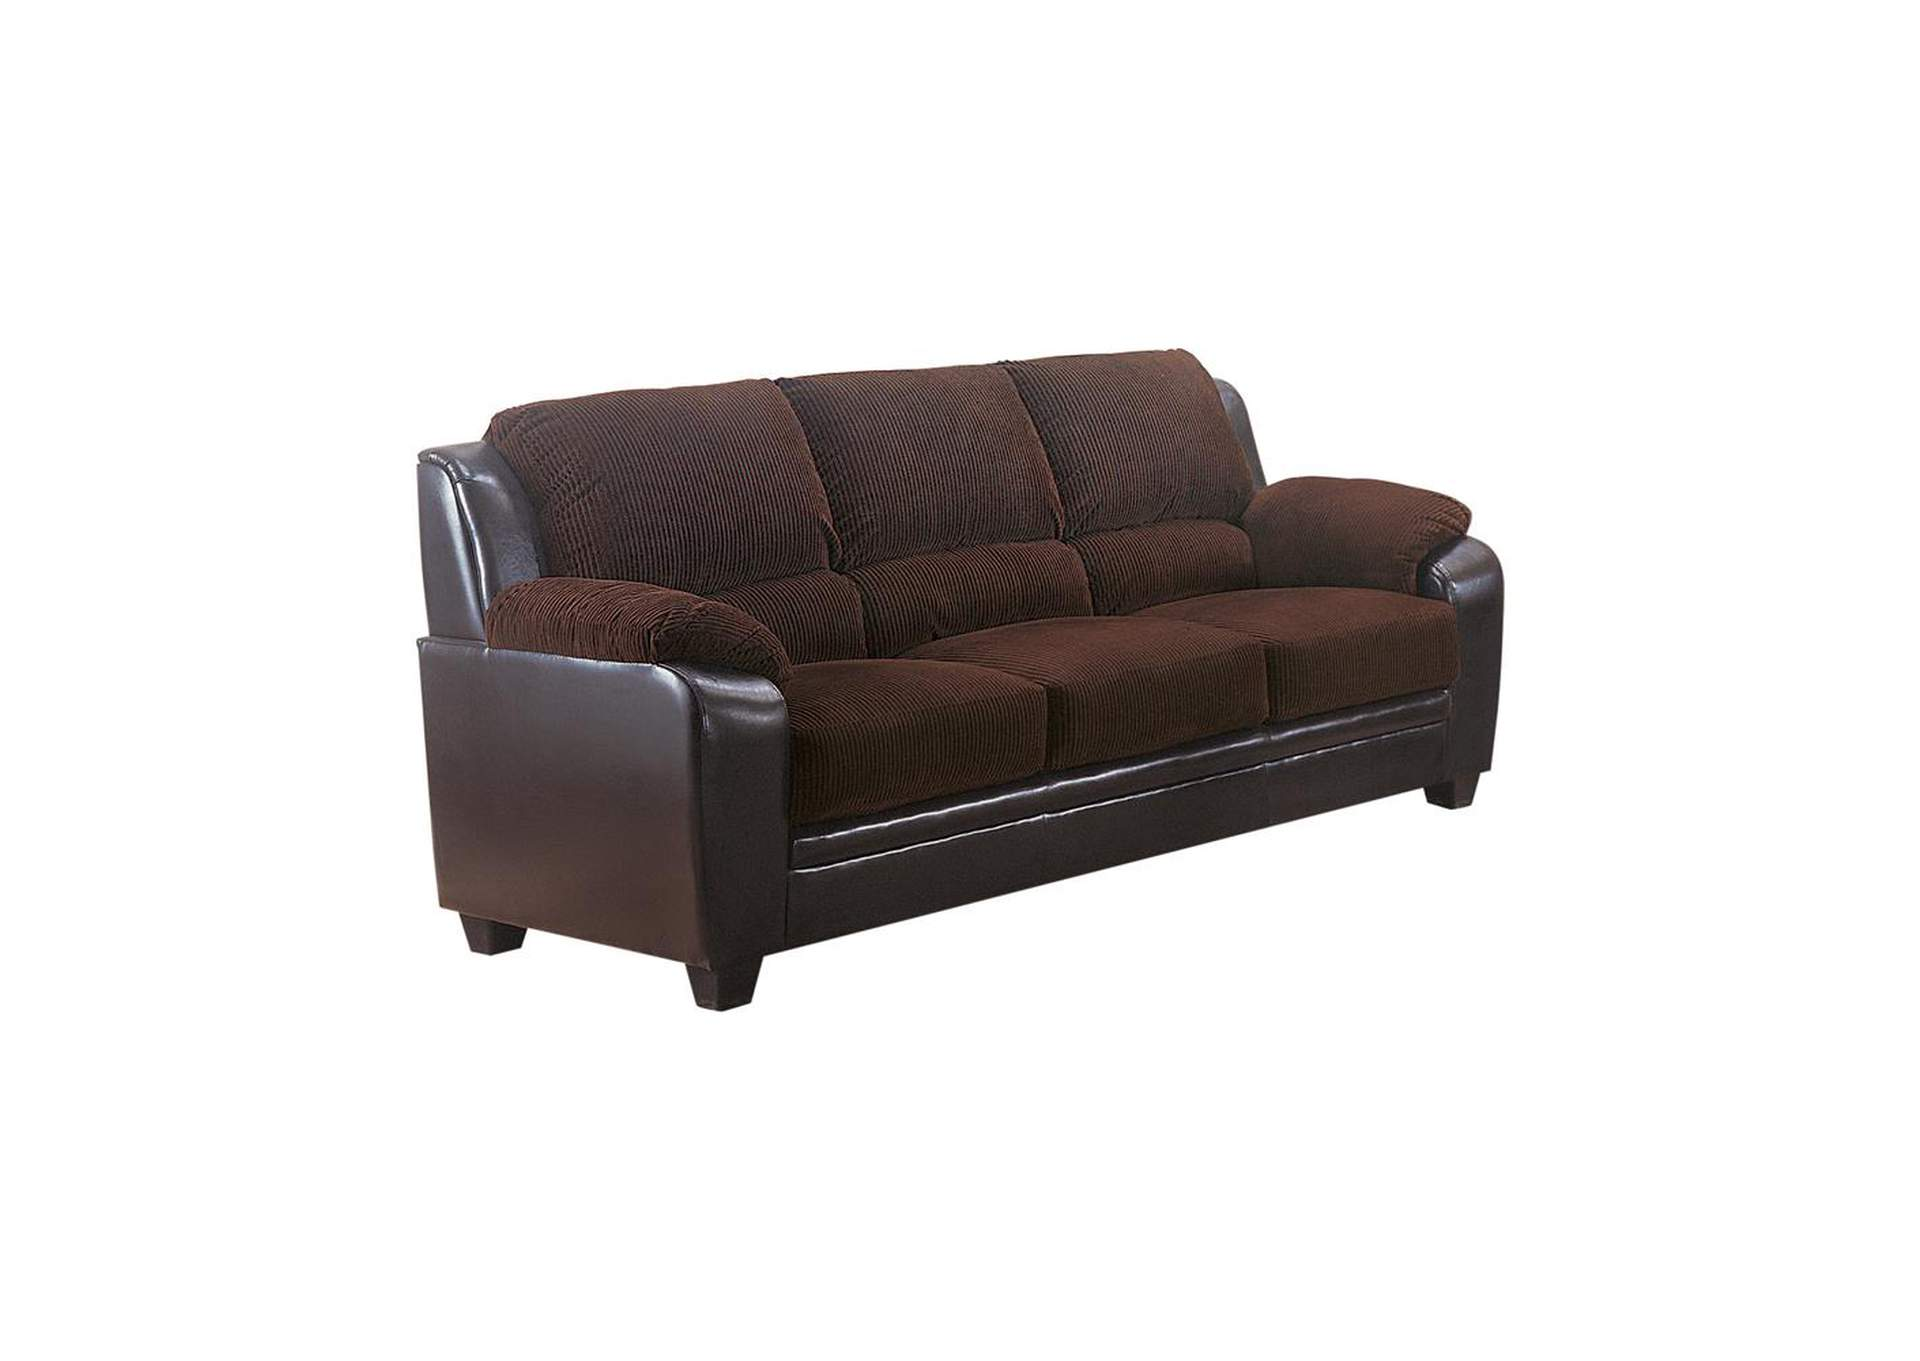 Eerie Black Monika Transitional Chocolate Sofa,Coaster Furniture